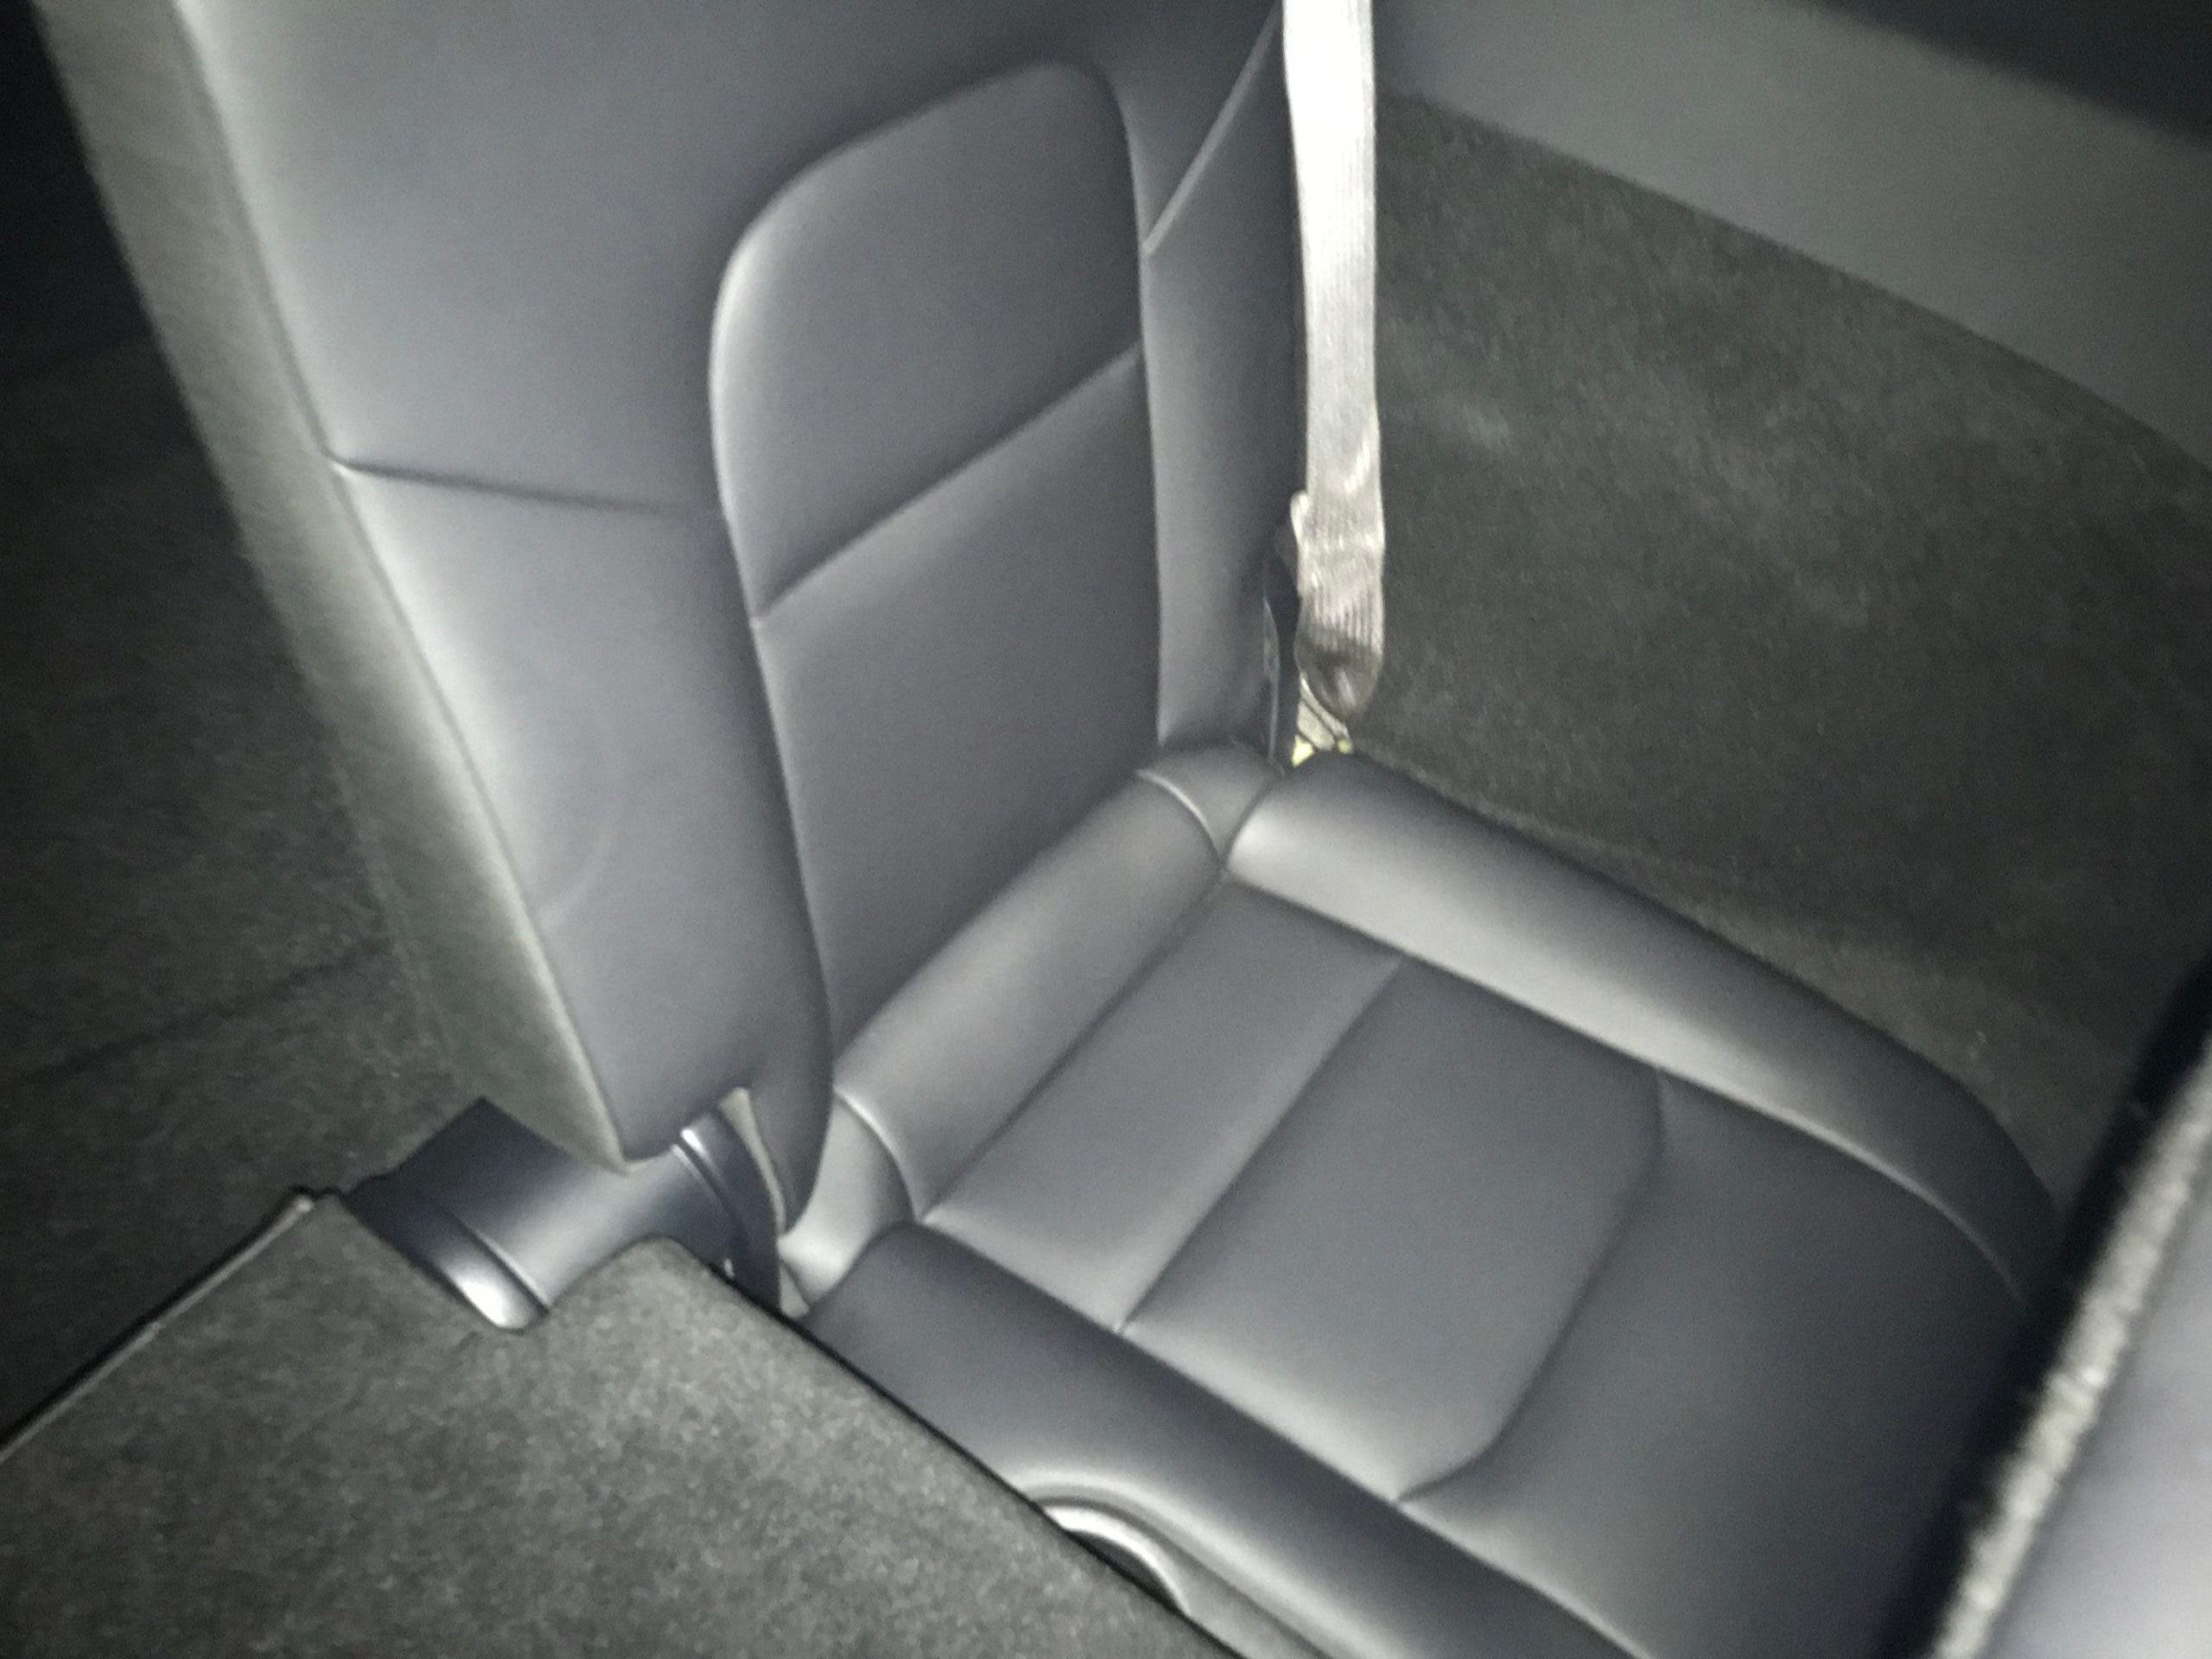 Tesla Model Y Interior Detailed Pictures Leaked At Last